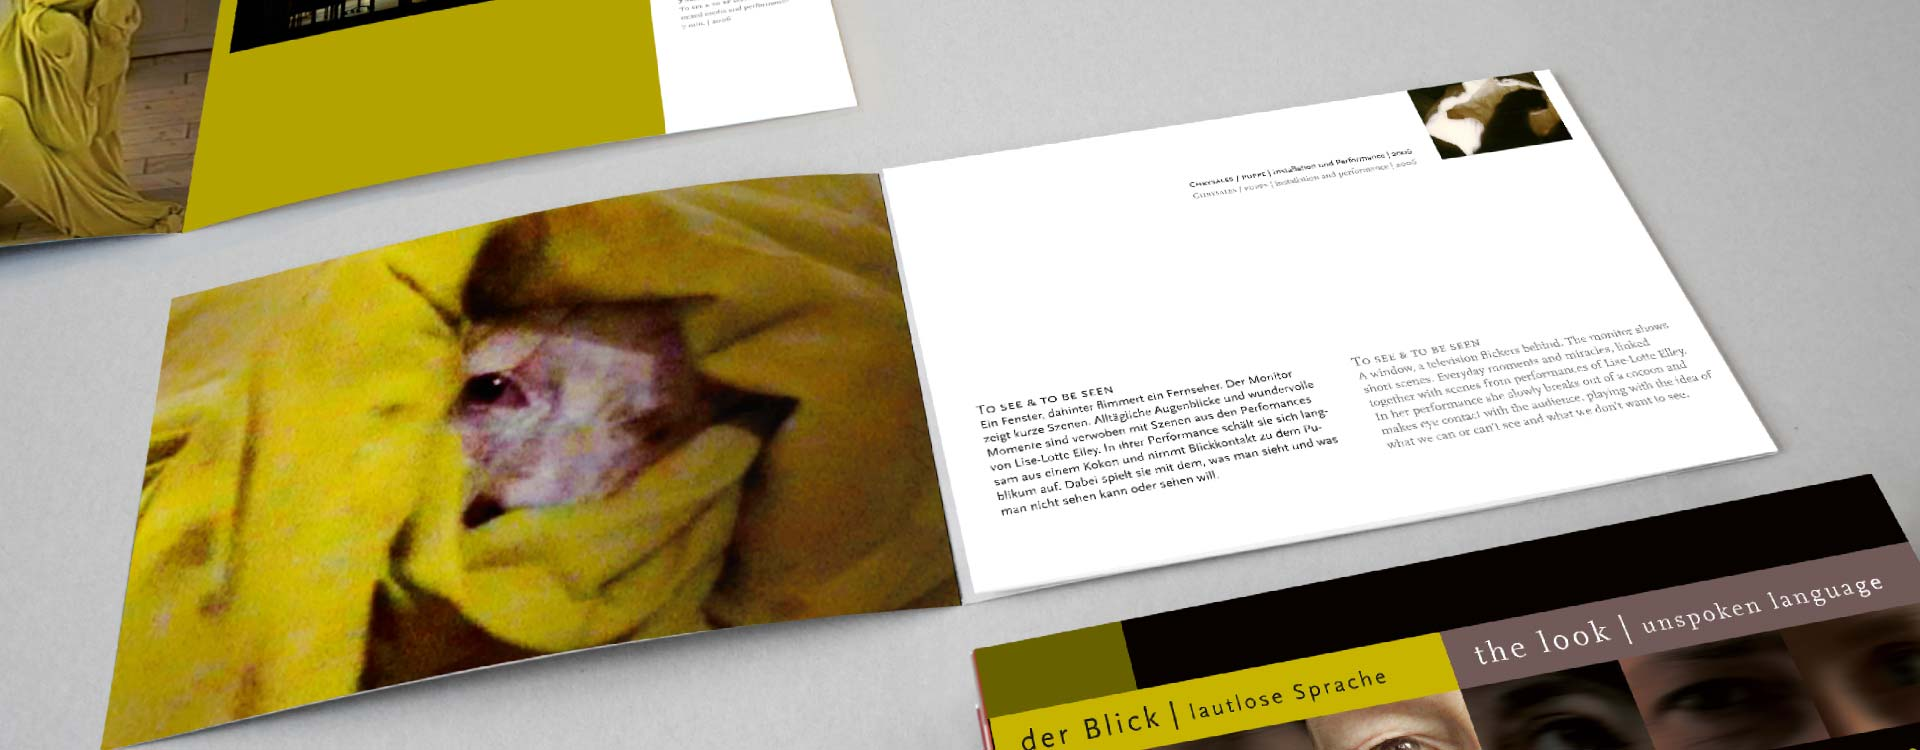 Leaflet about the work of Lise-Lotte Elley in the exhibition Der Blick; Design: Kattrin Richter | Graphic Design Studio